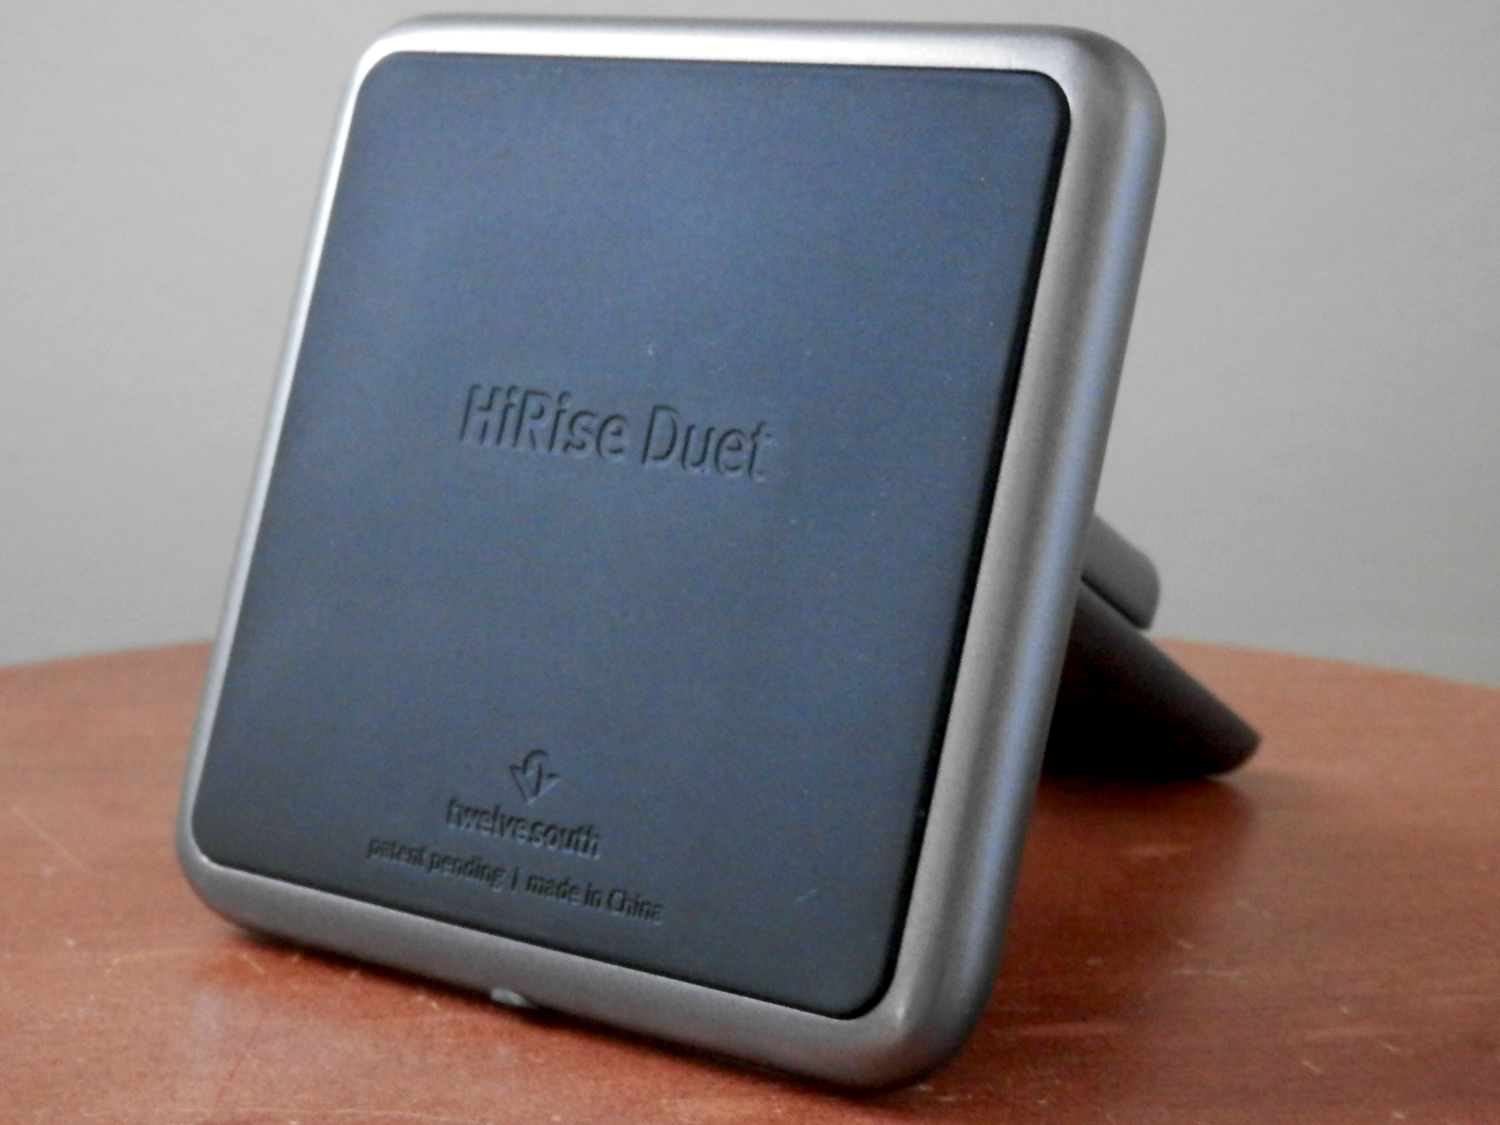 Twelve South HiRise Duet Bottom